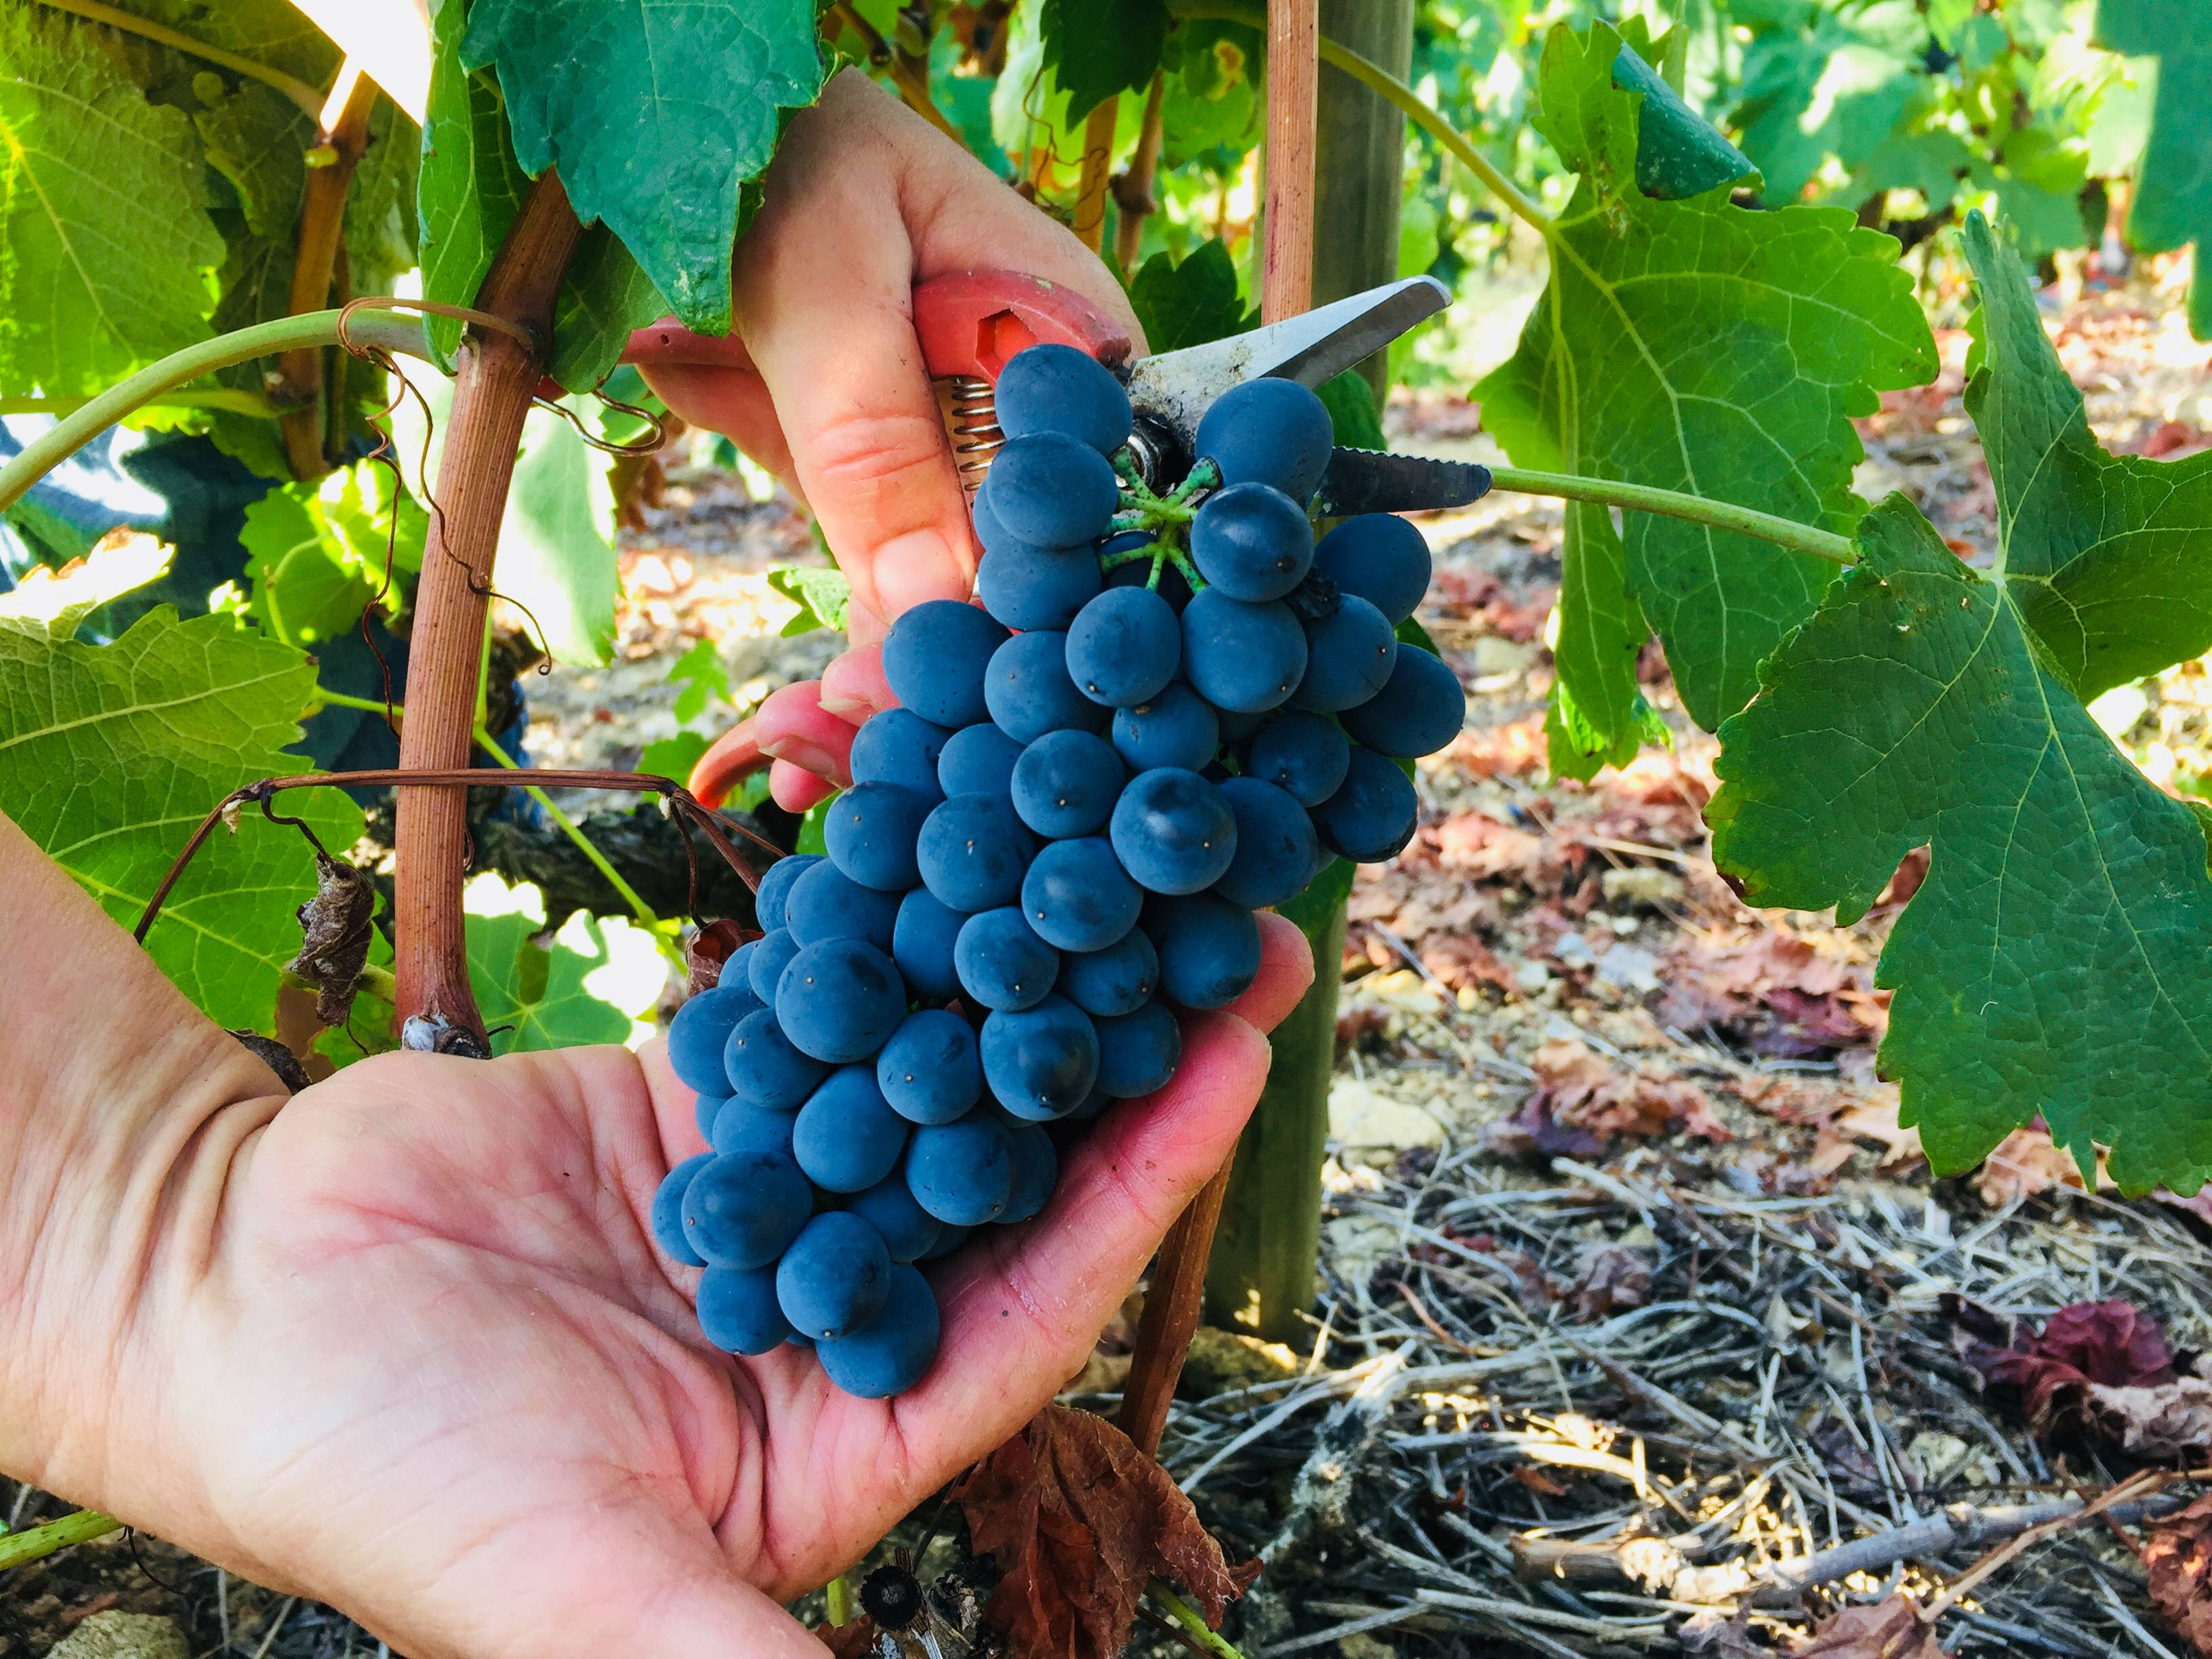 Vendanges de la syrah